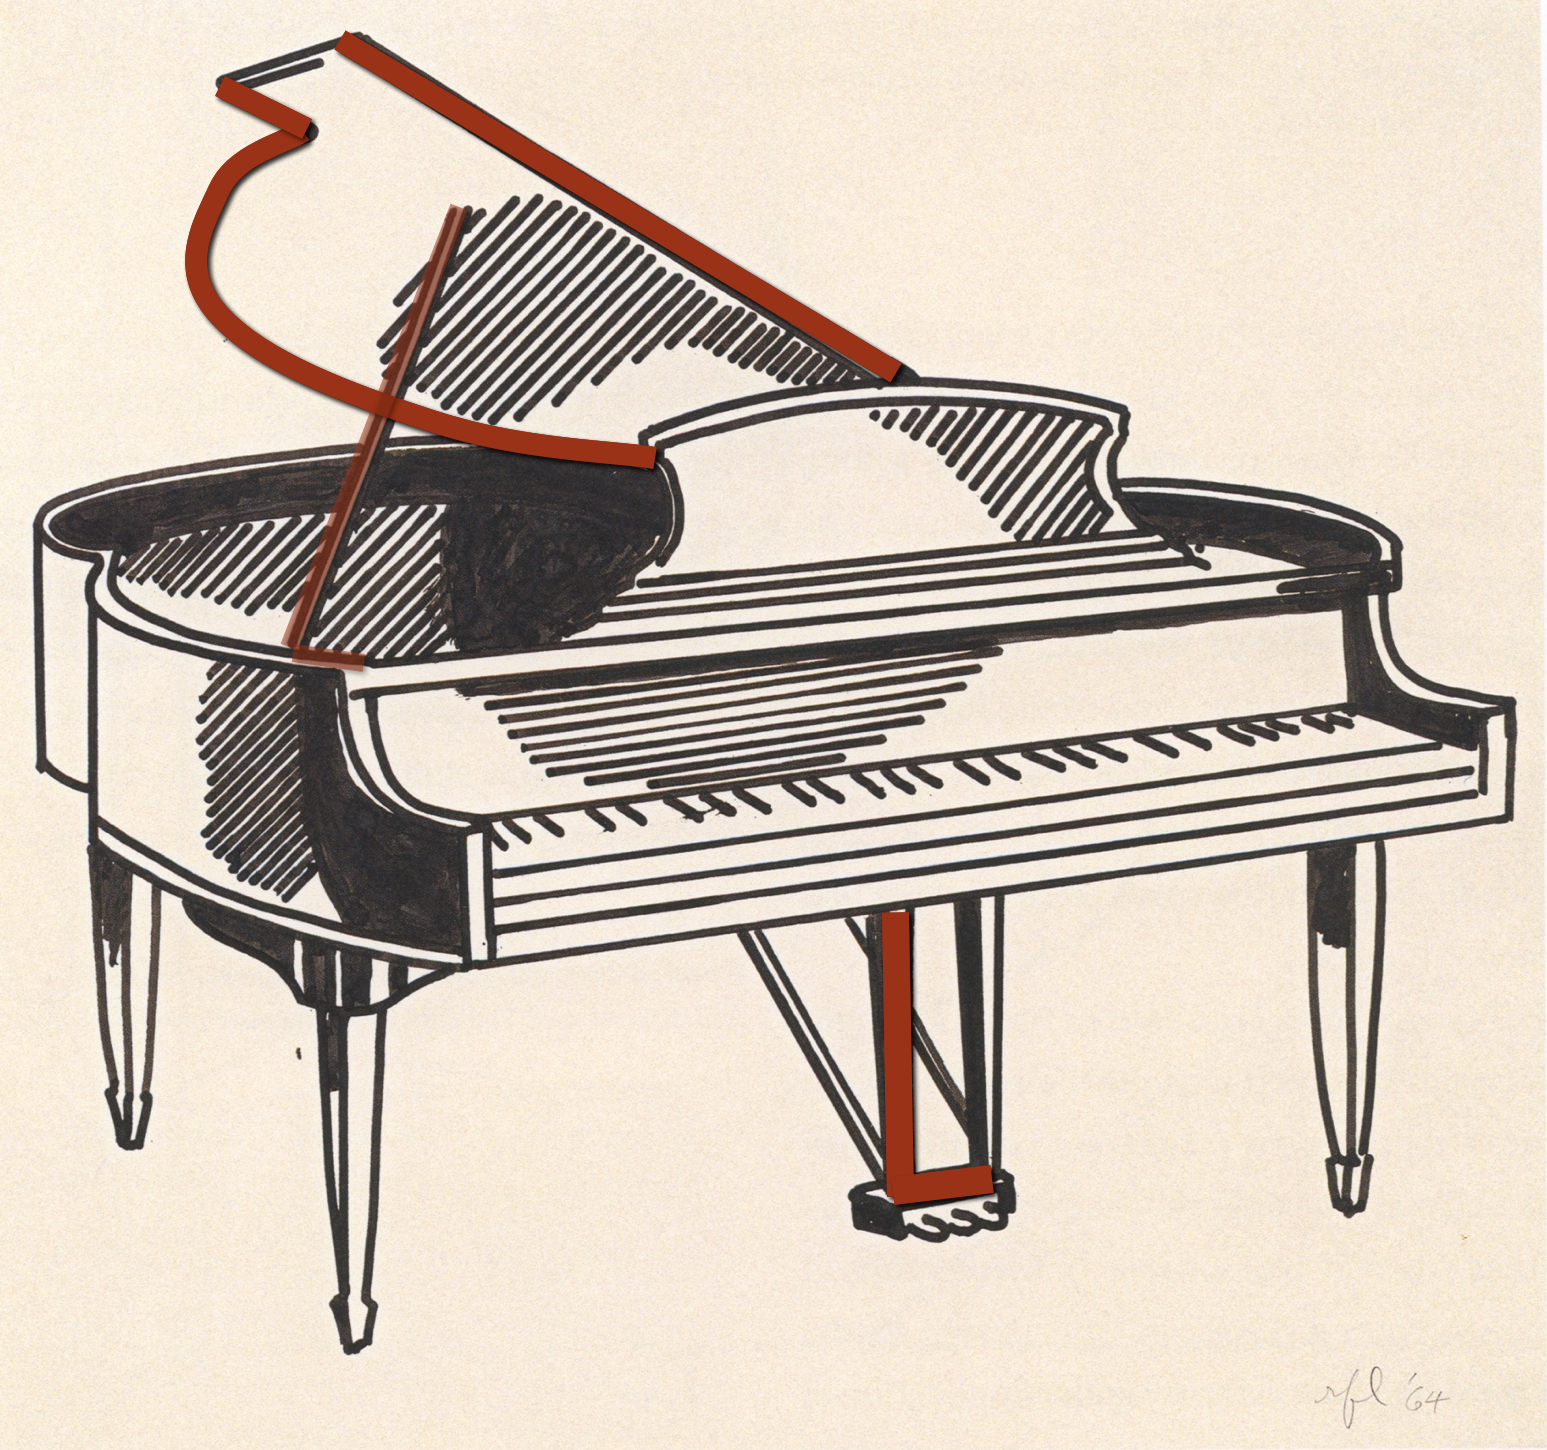 Epph lichtensteins piano c1961 as i showed of a contemporaneous drawing alka seltzer the artist has also used the shapes of his motif to form his initials here r for roy suggested in pooptronica